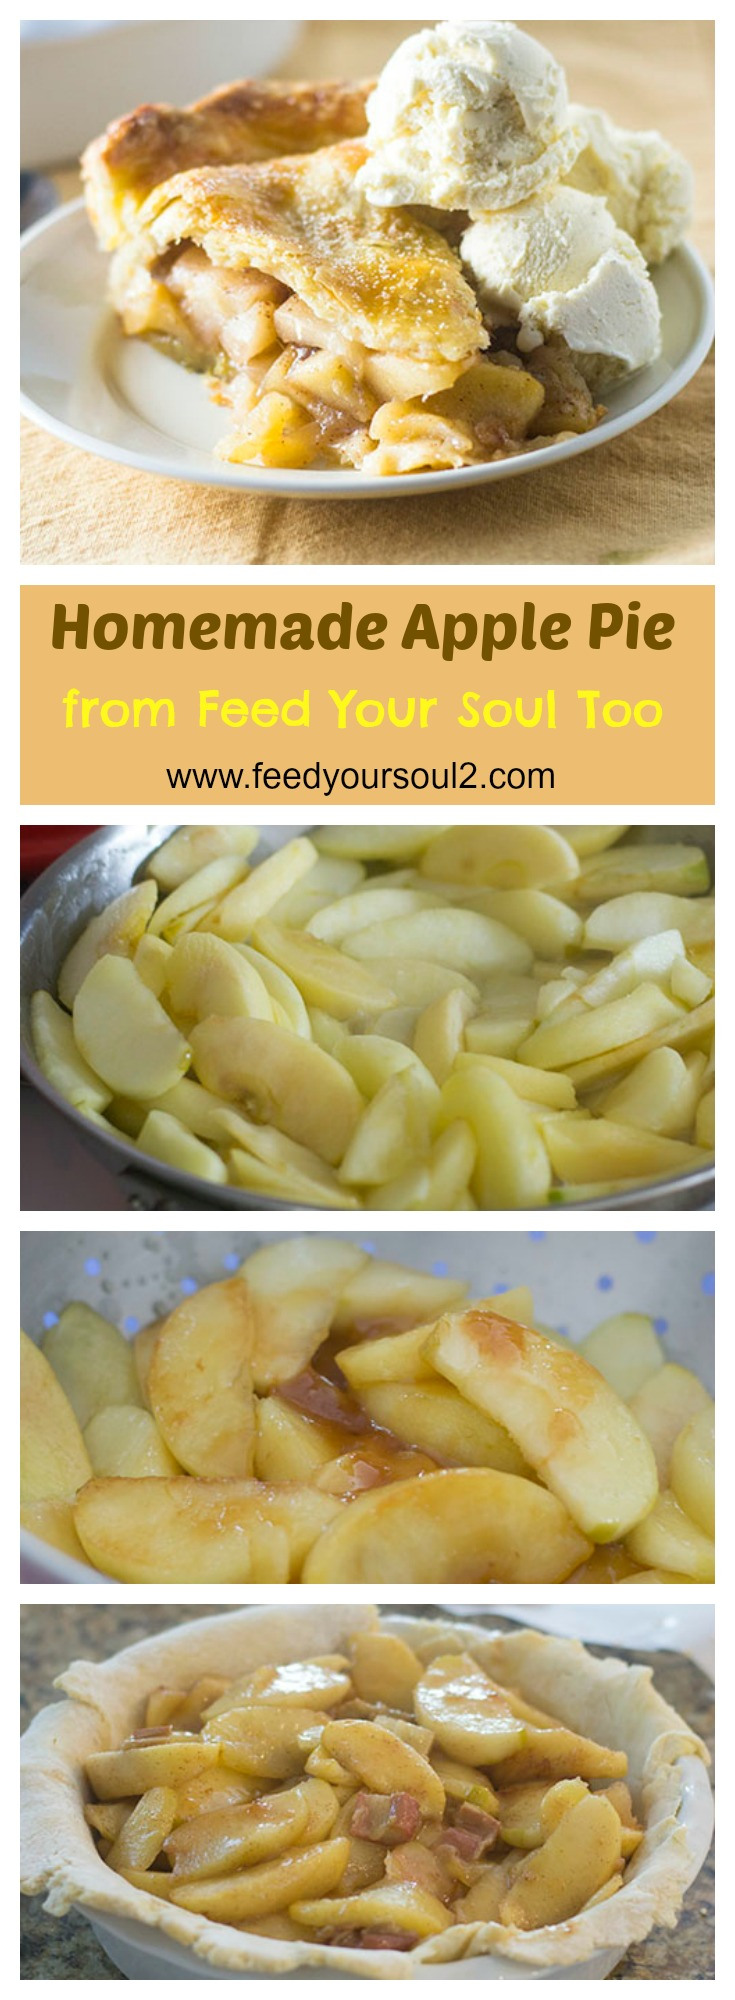 Homemade Apple Pie #dessert #apples #piecrust | feedyoursoul2.com